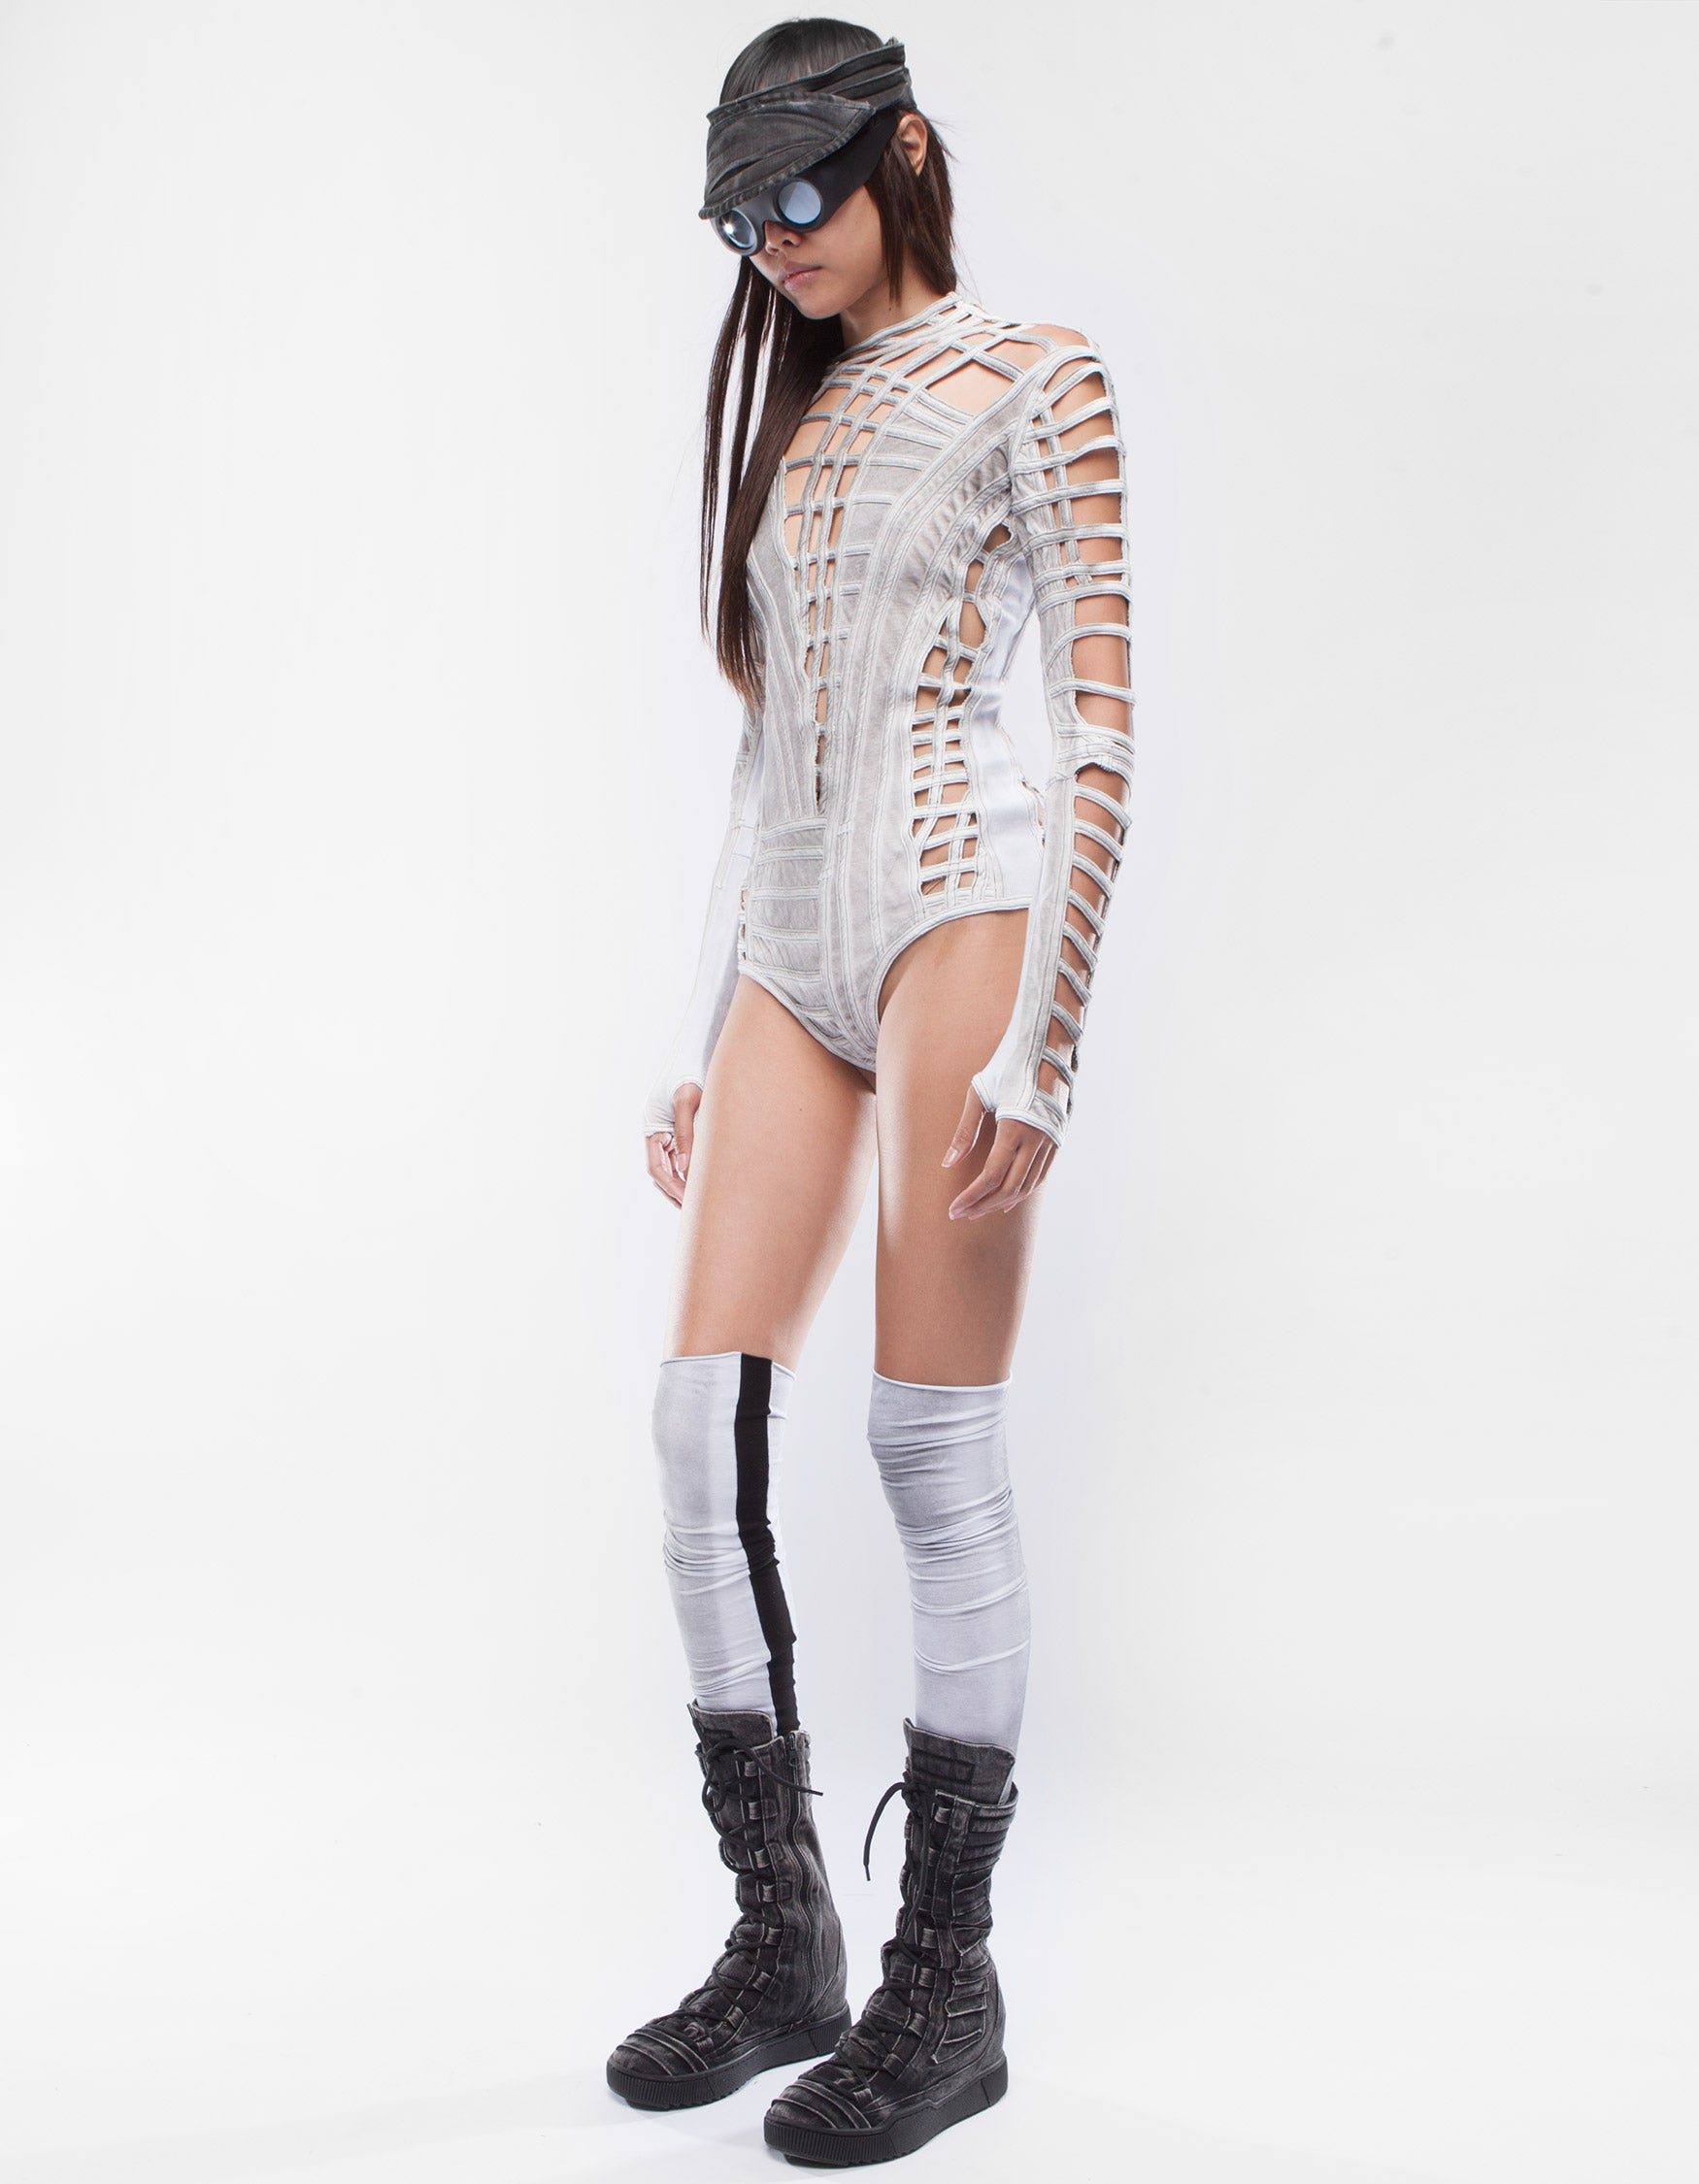 BODYSUIT LIGHTWORKER